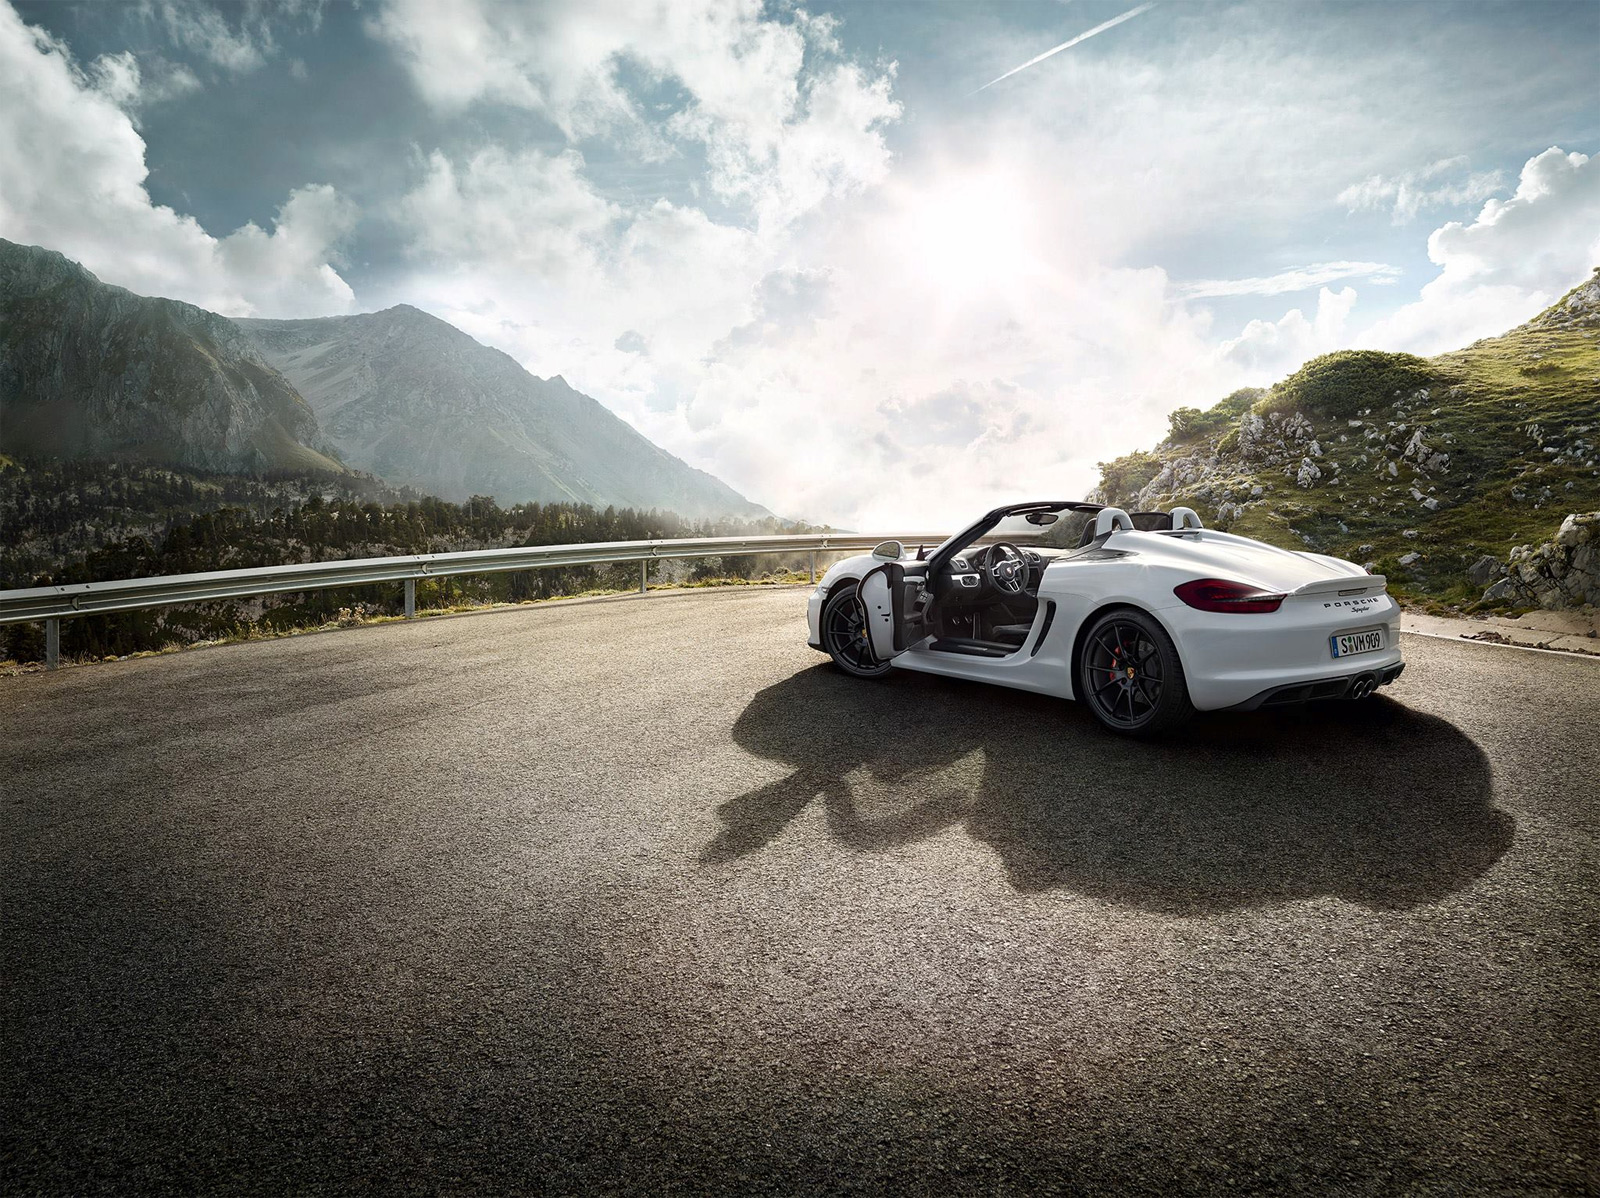 the 2016 boxster spyder will be available in the us this october for 82100 and you can place your order at dealerships now